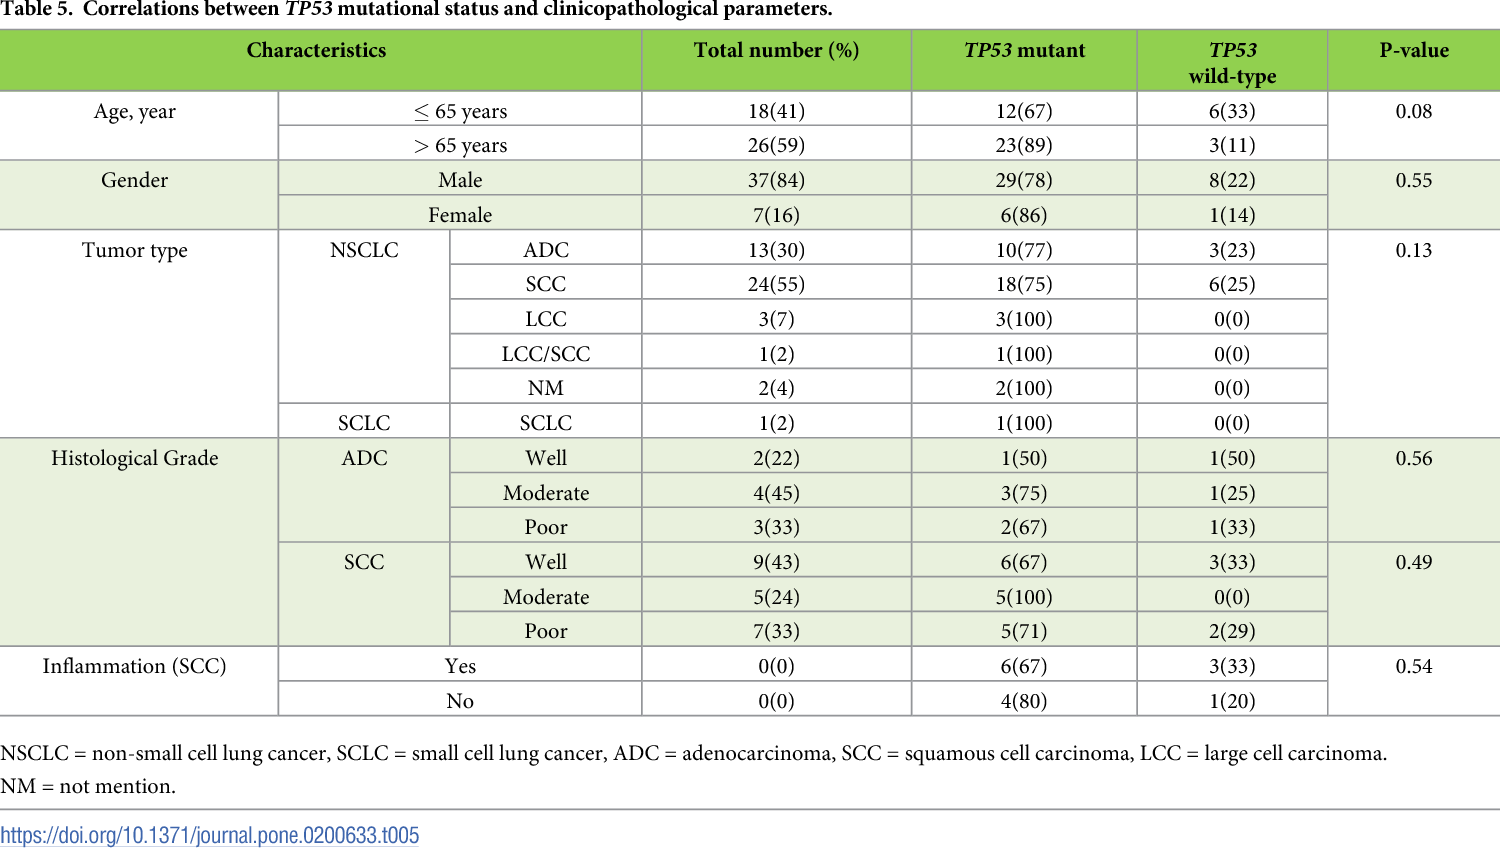 Table 5. Correlations between TP53 mutational status and clinicopathological parameters.